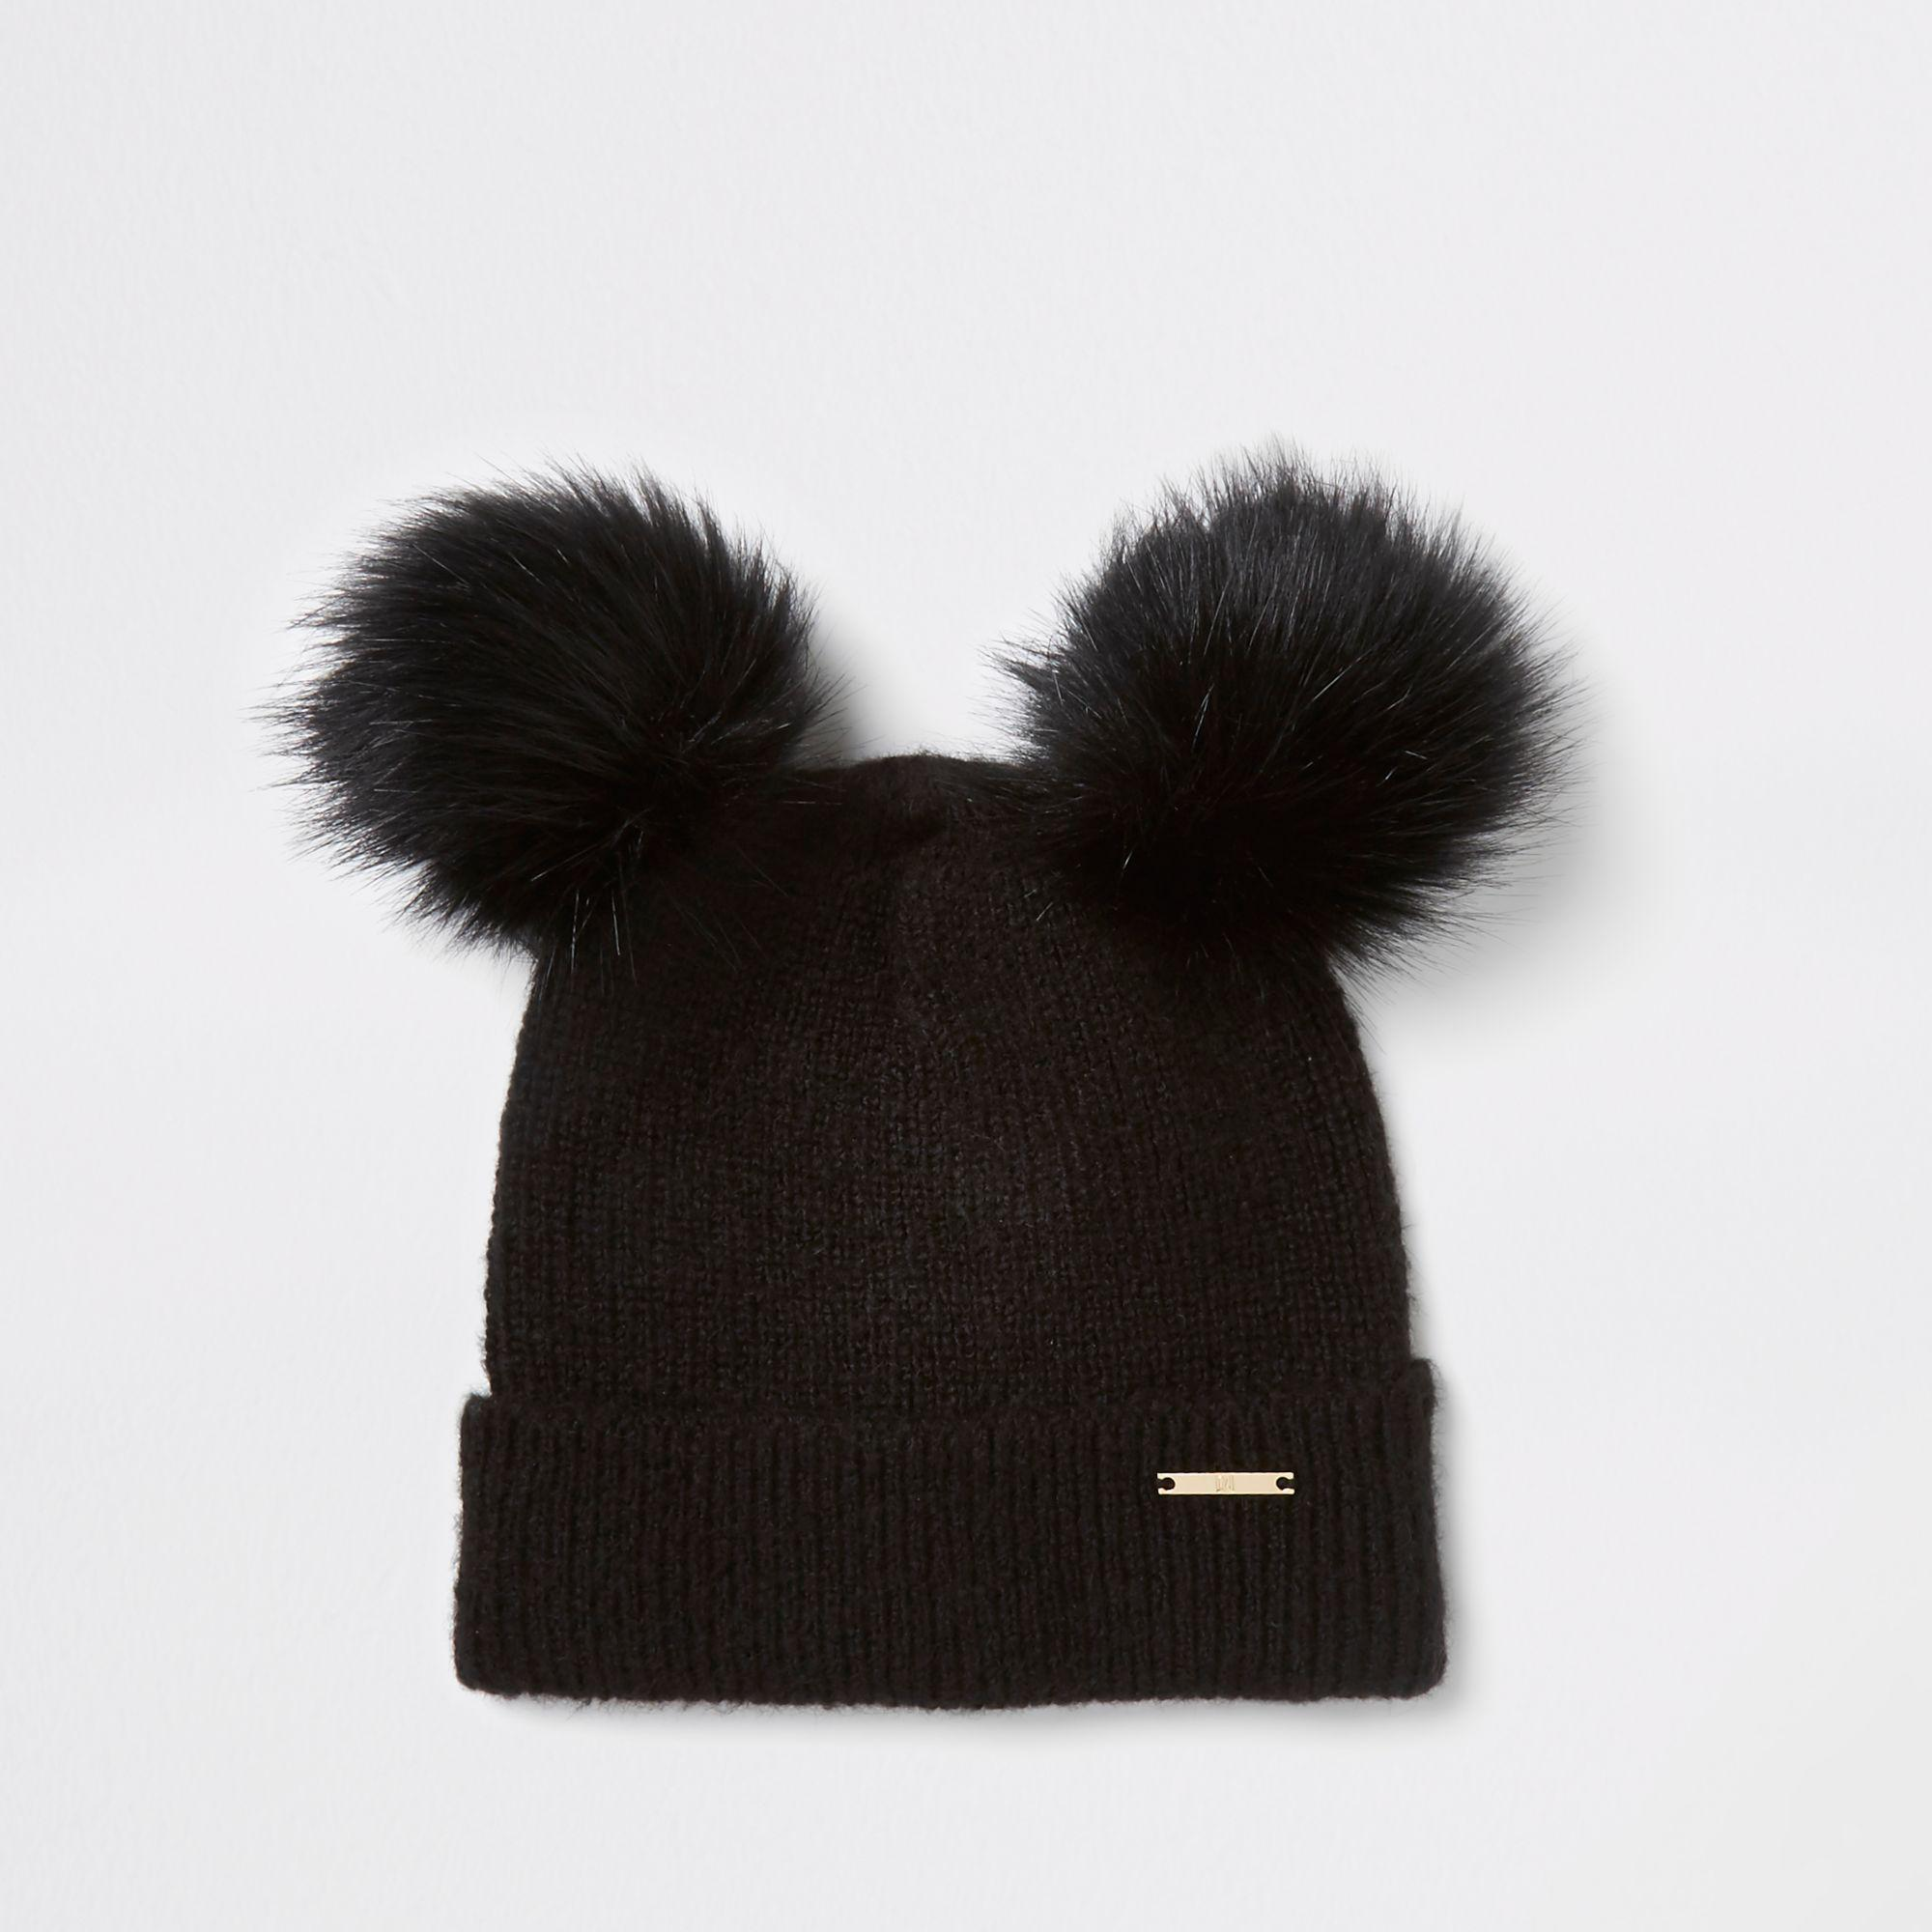 966434918ad River Island Black Faux Fur Double Pom Pom Beanie Hat in Black - Lyst